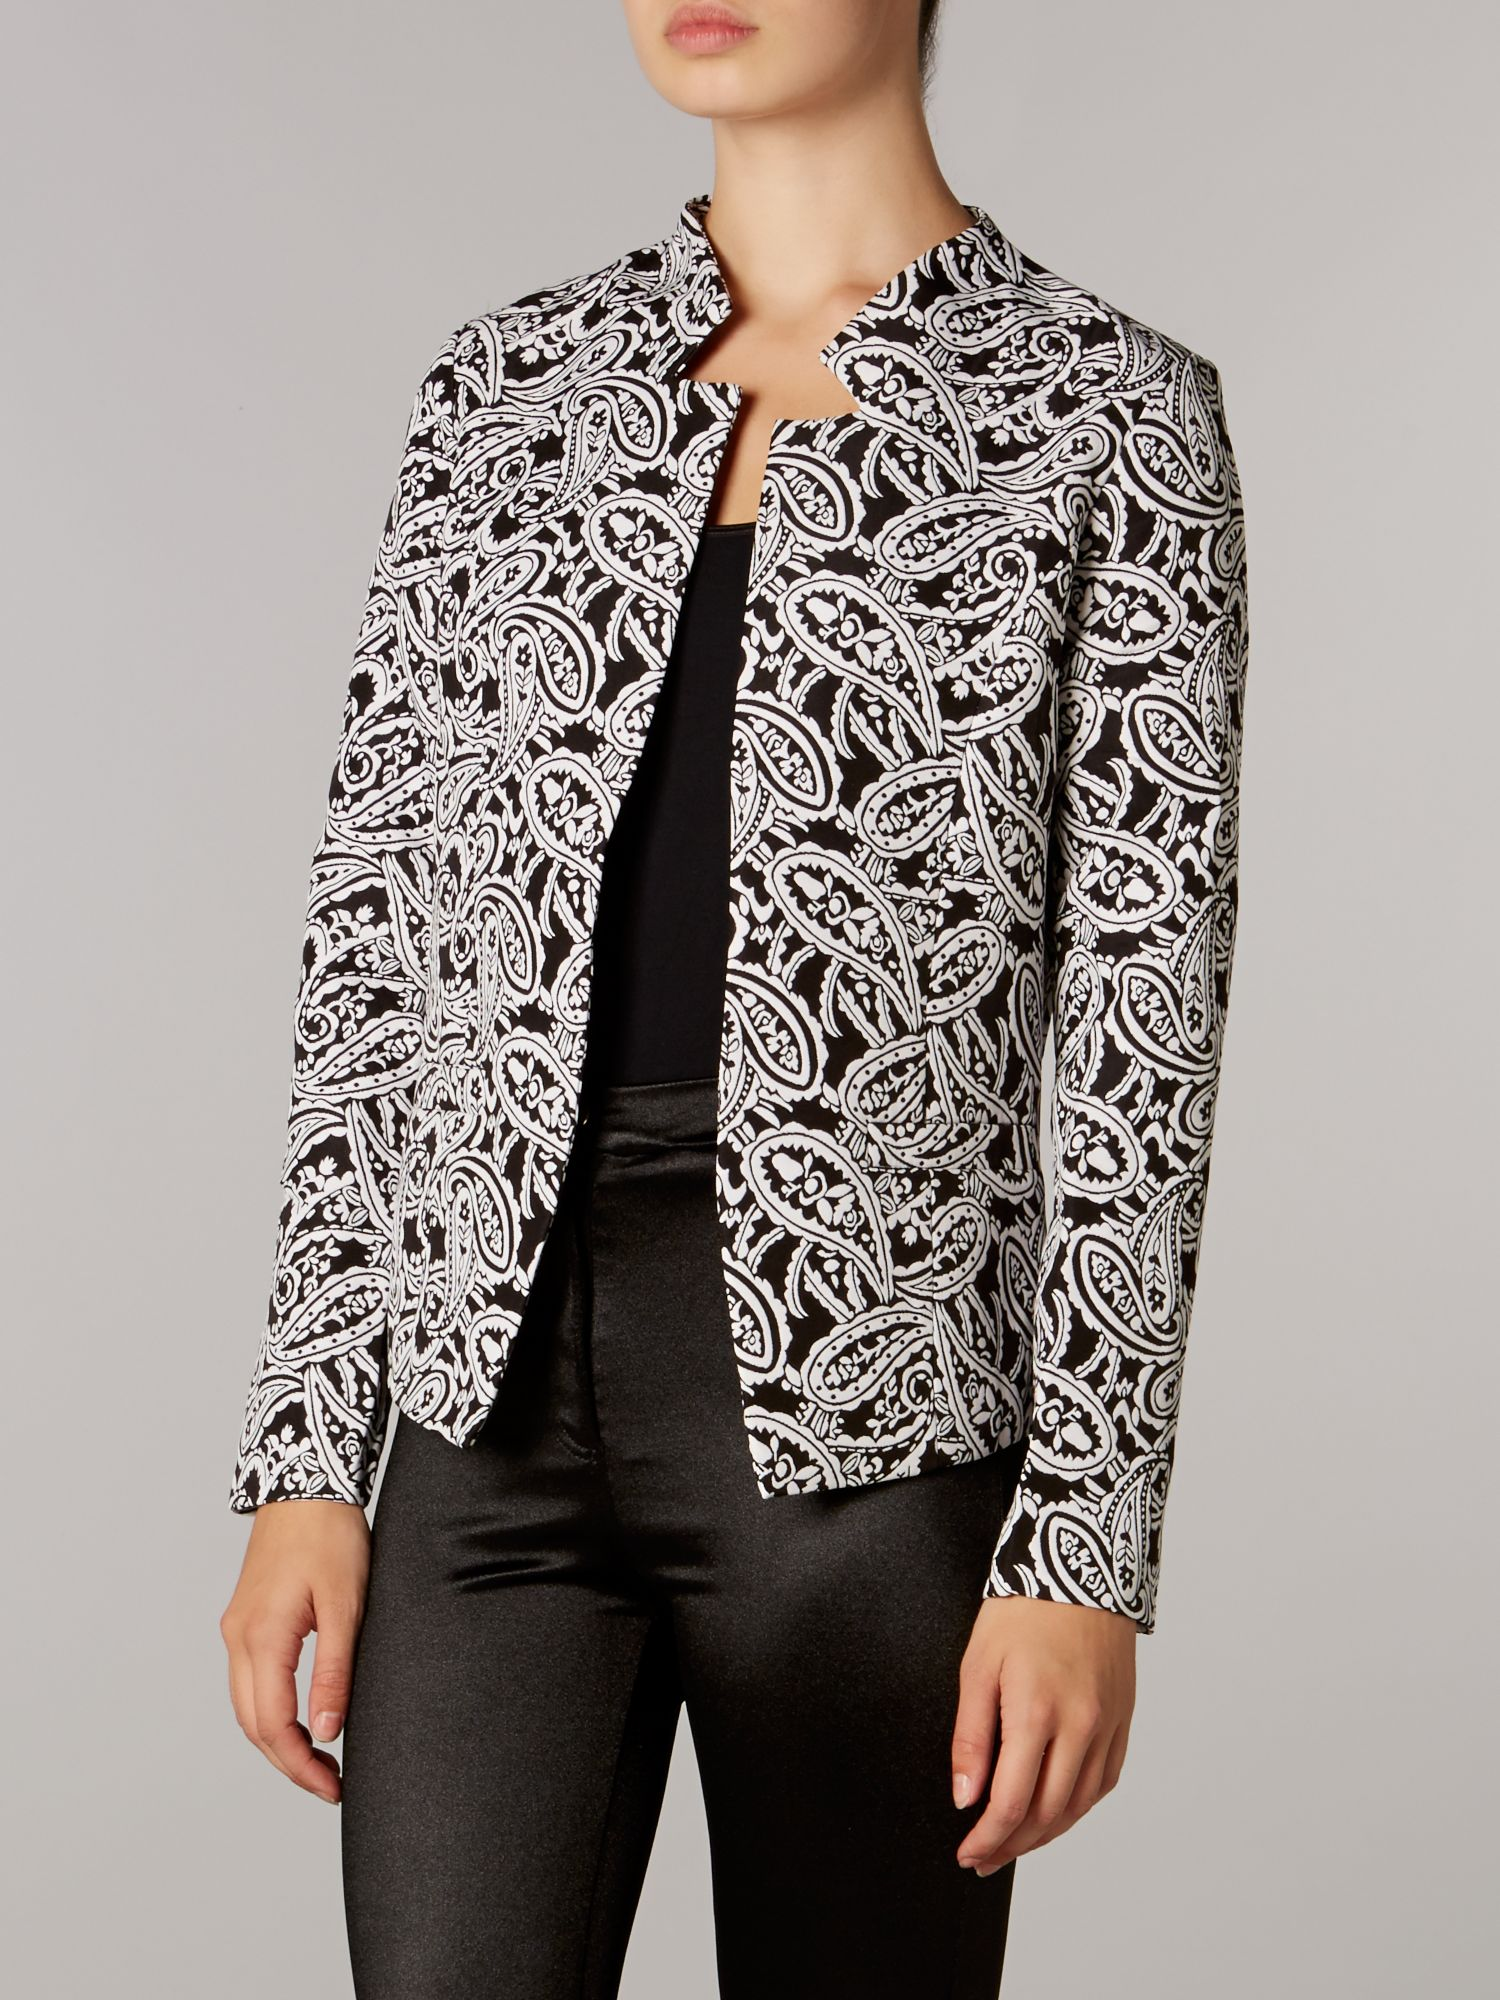 Cut out collar 3d blazer